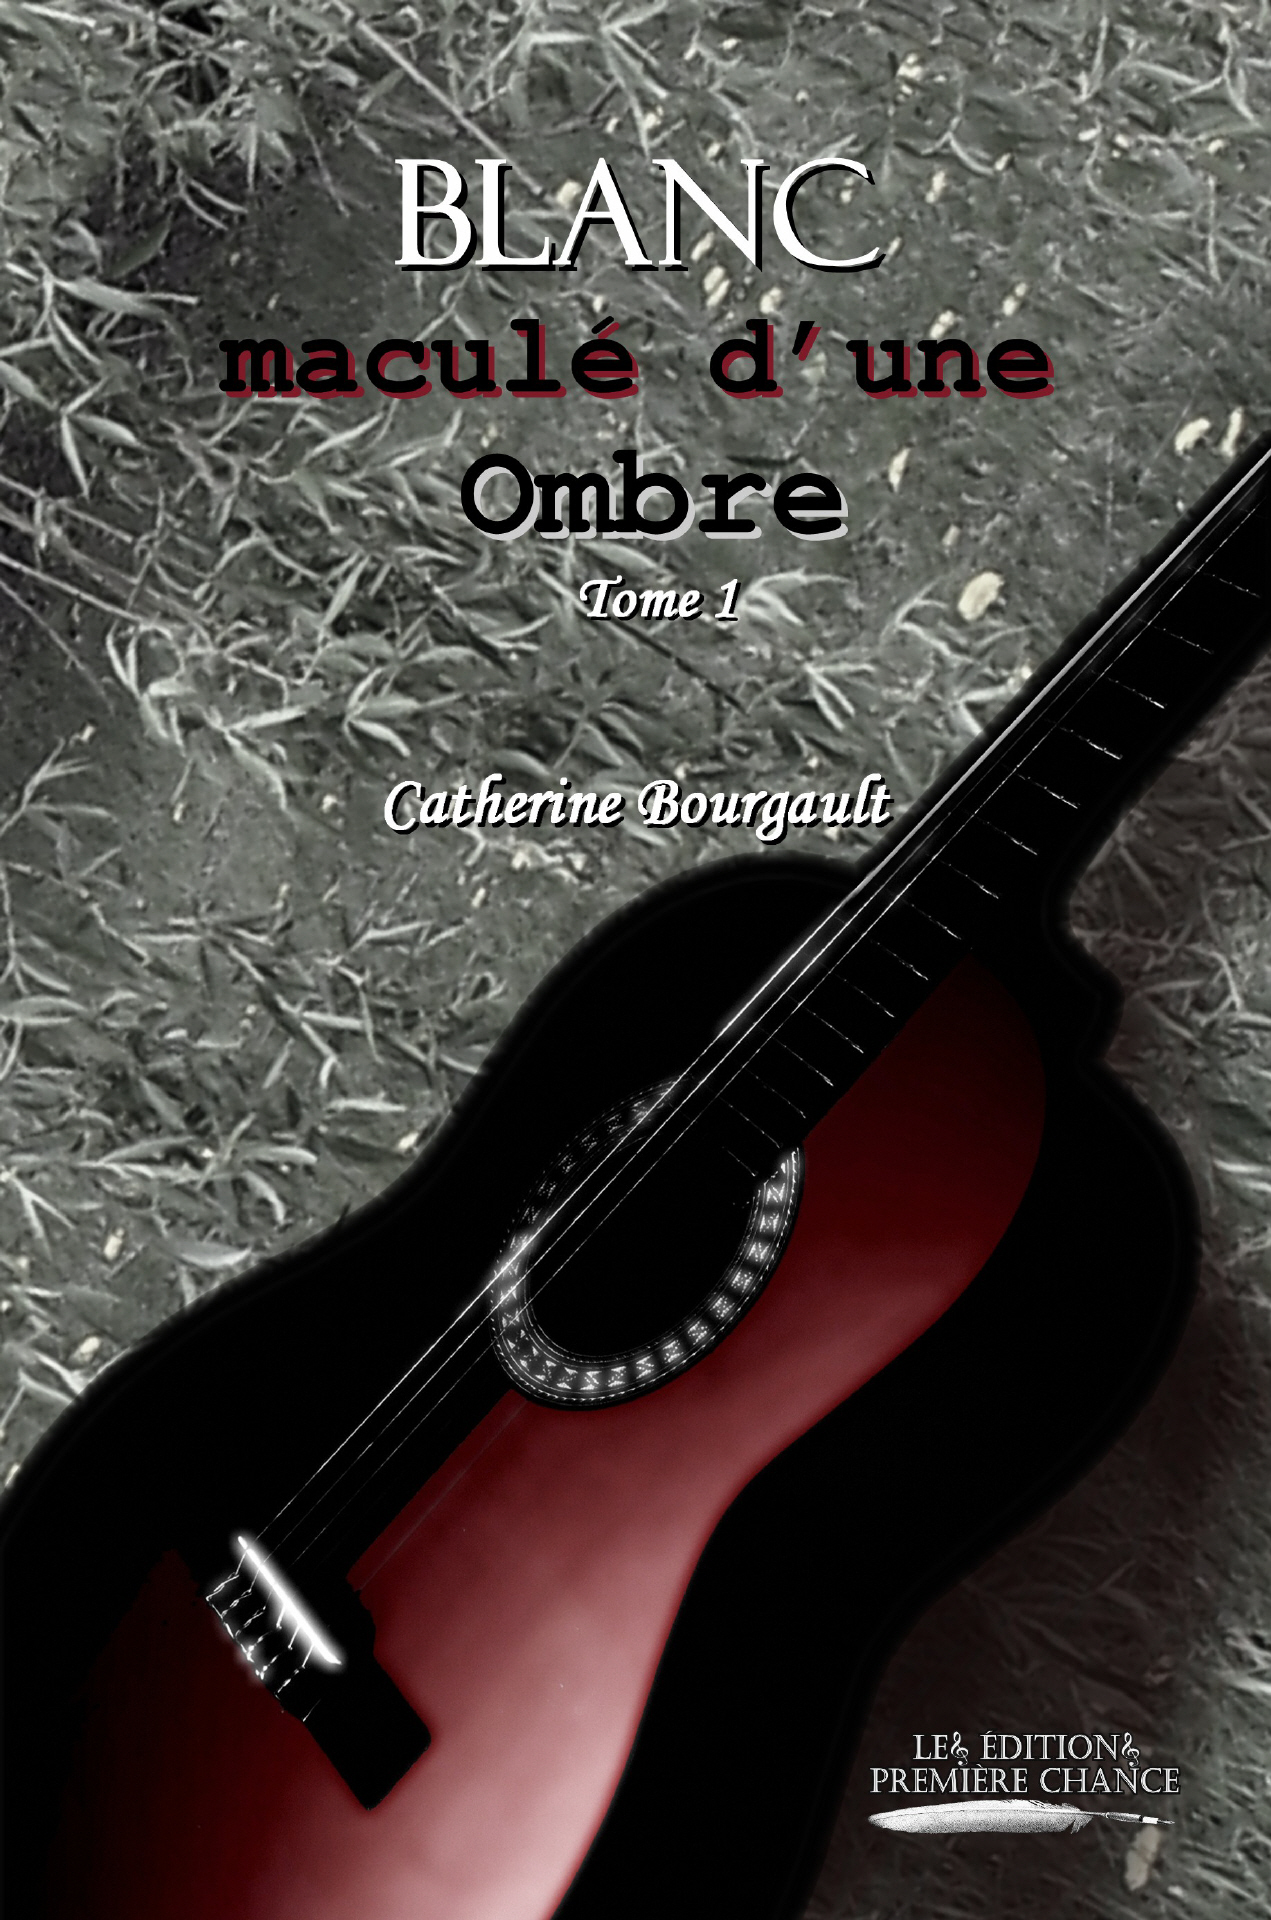 Blanc maculé d'une ombre, Tome 1 / Catherine Bourgault